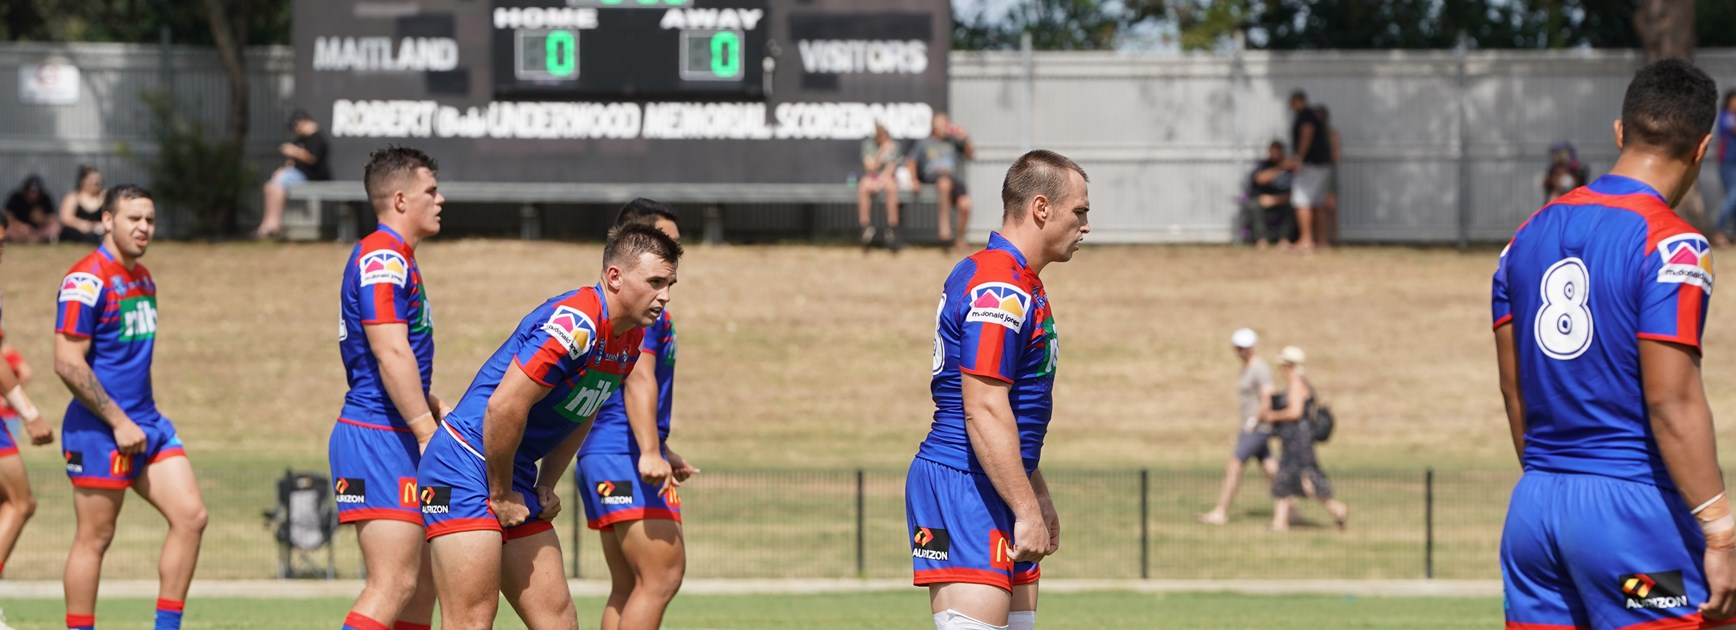 Knights ISP grind out win over Jets